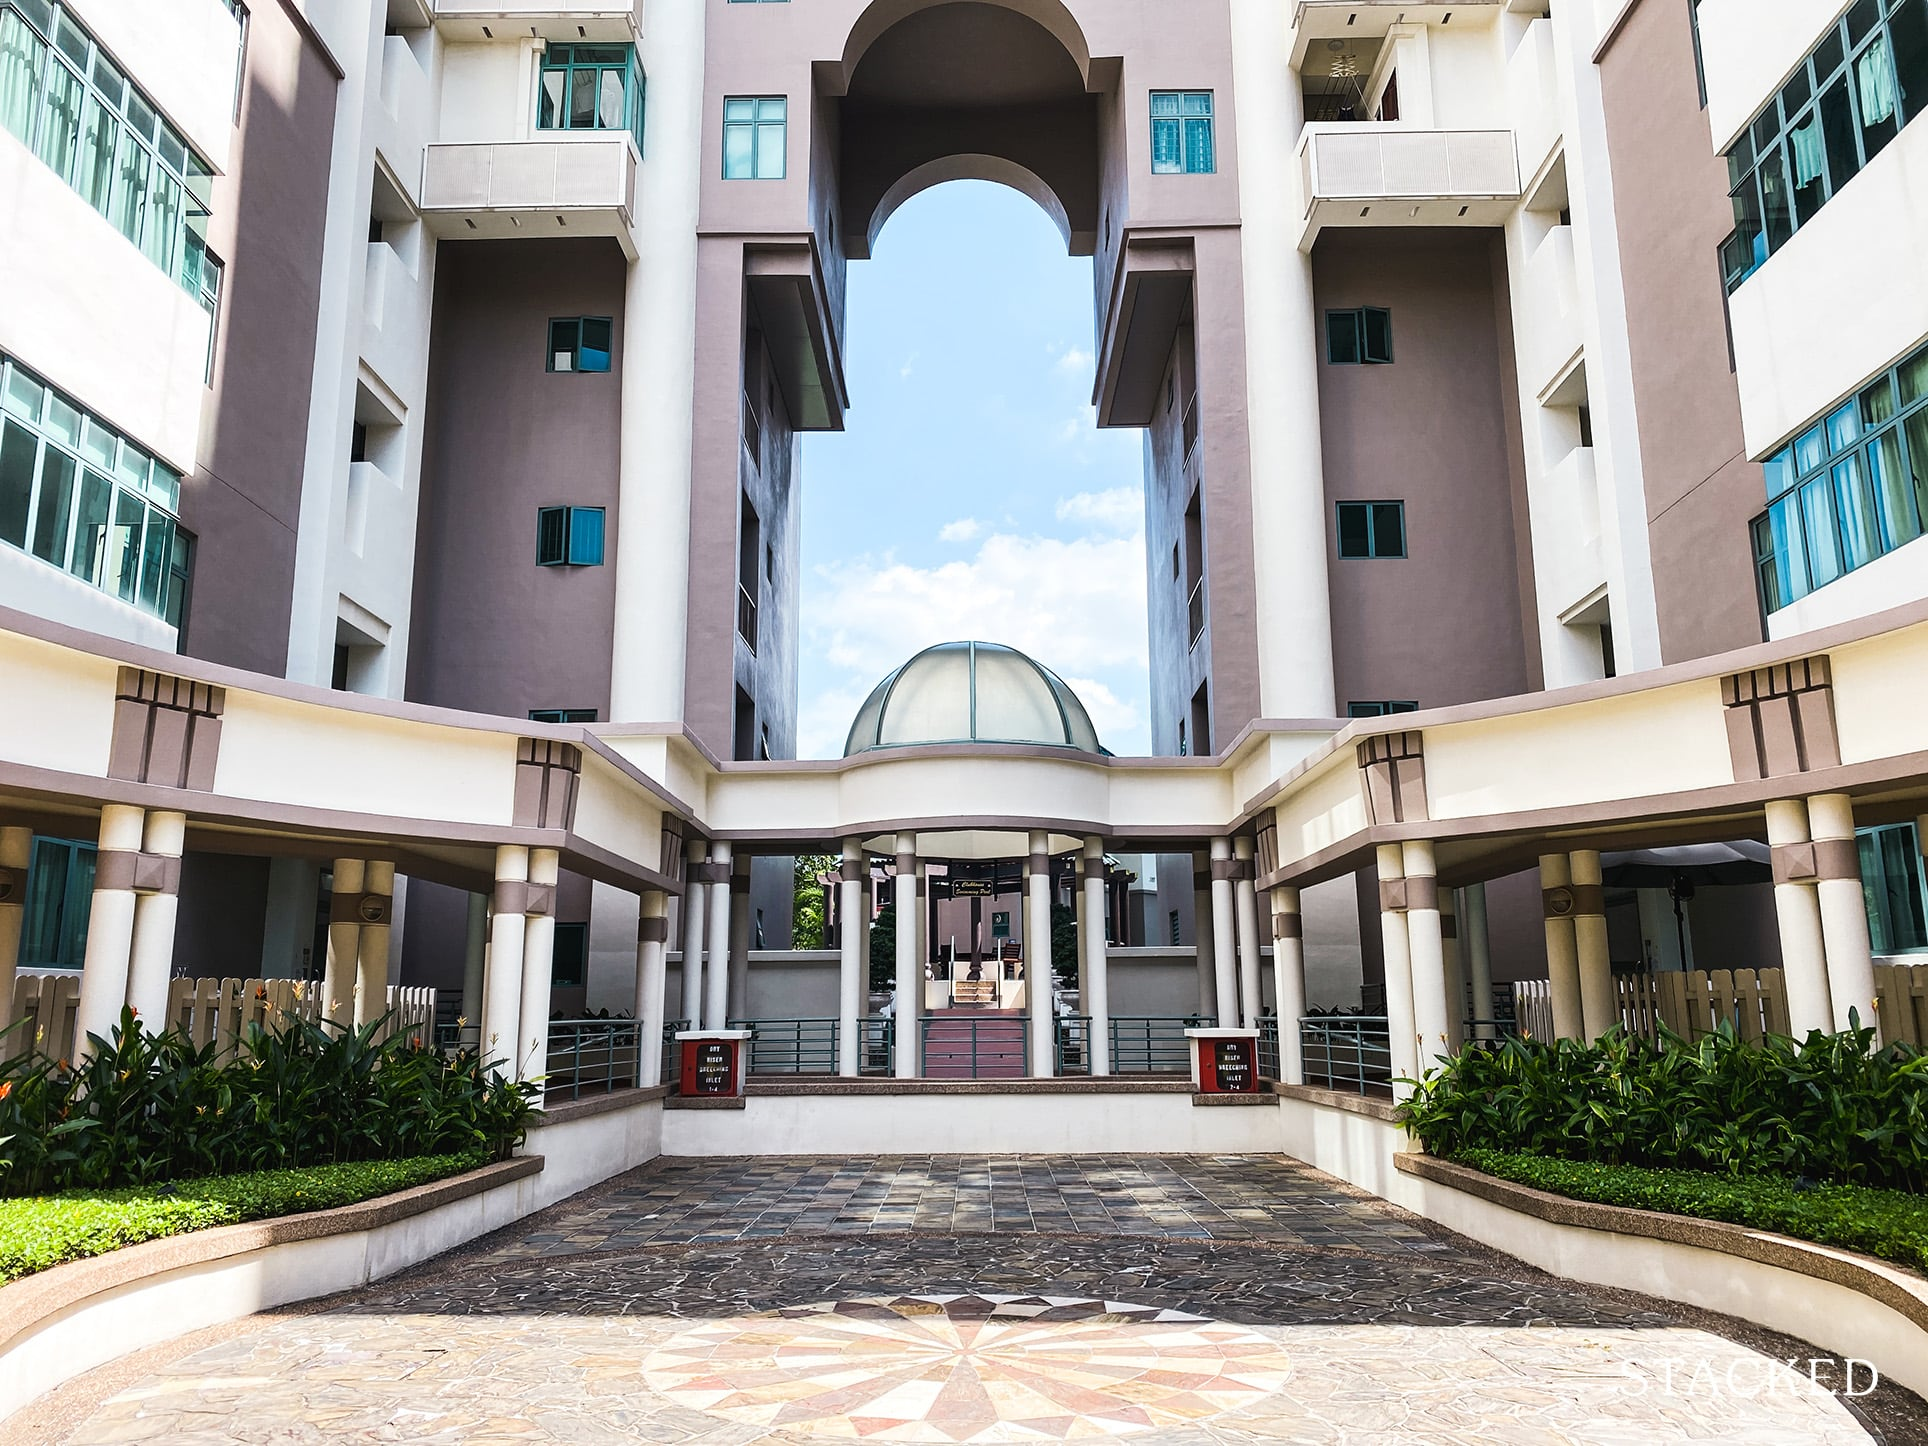 Tanglin regency open courtyard